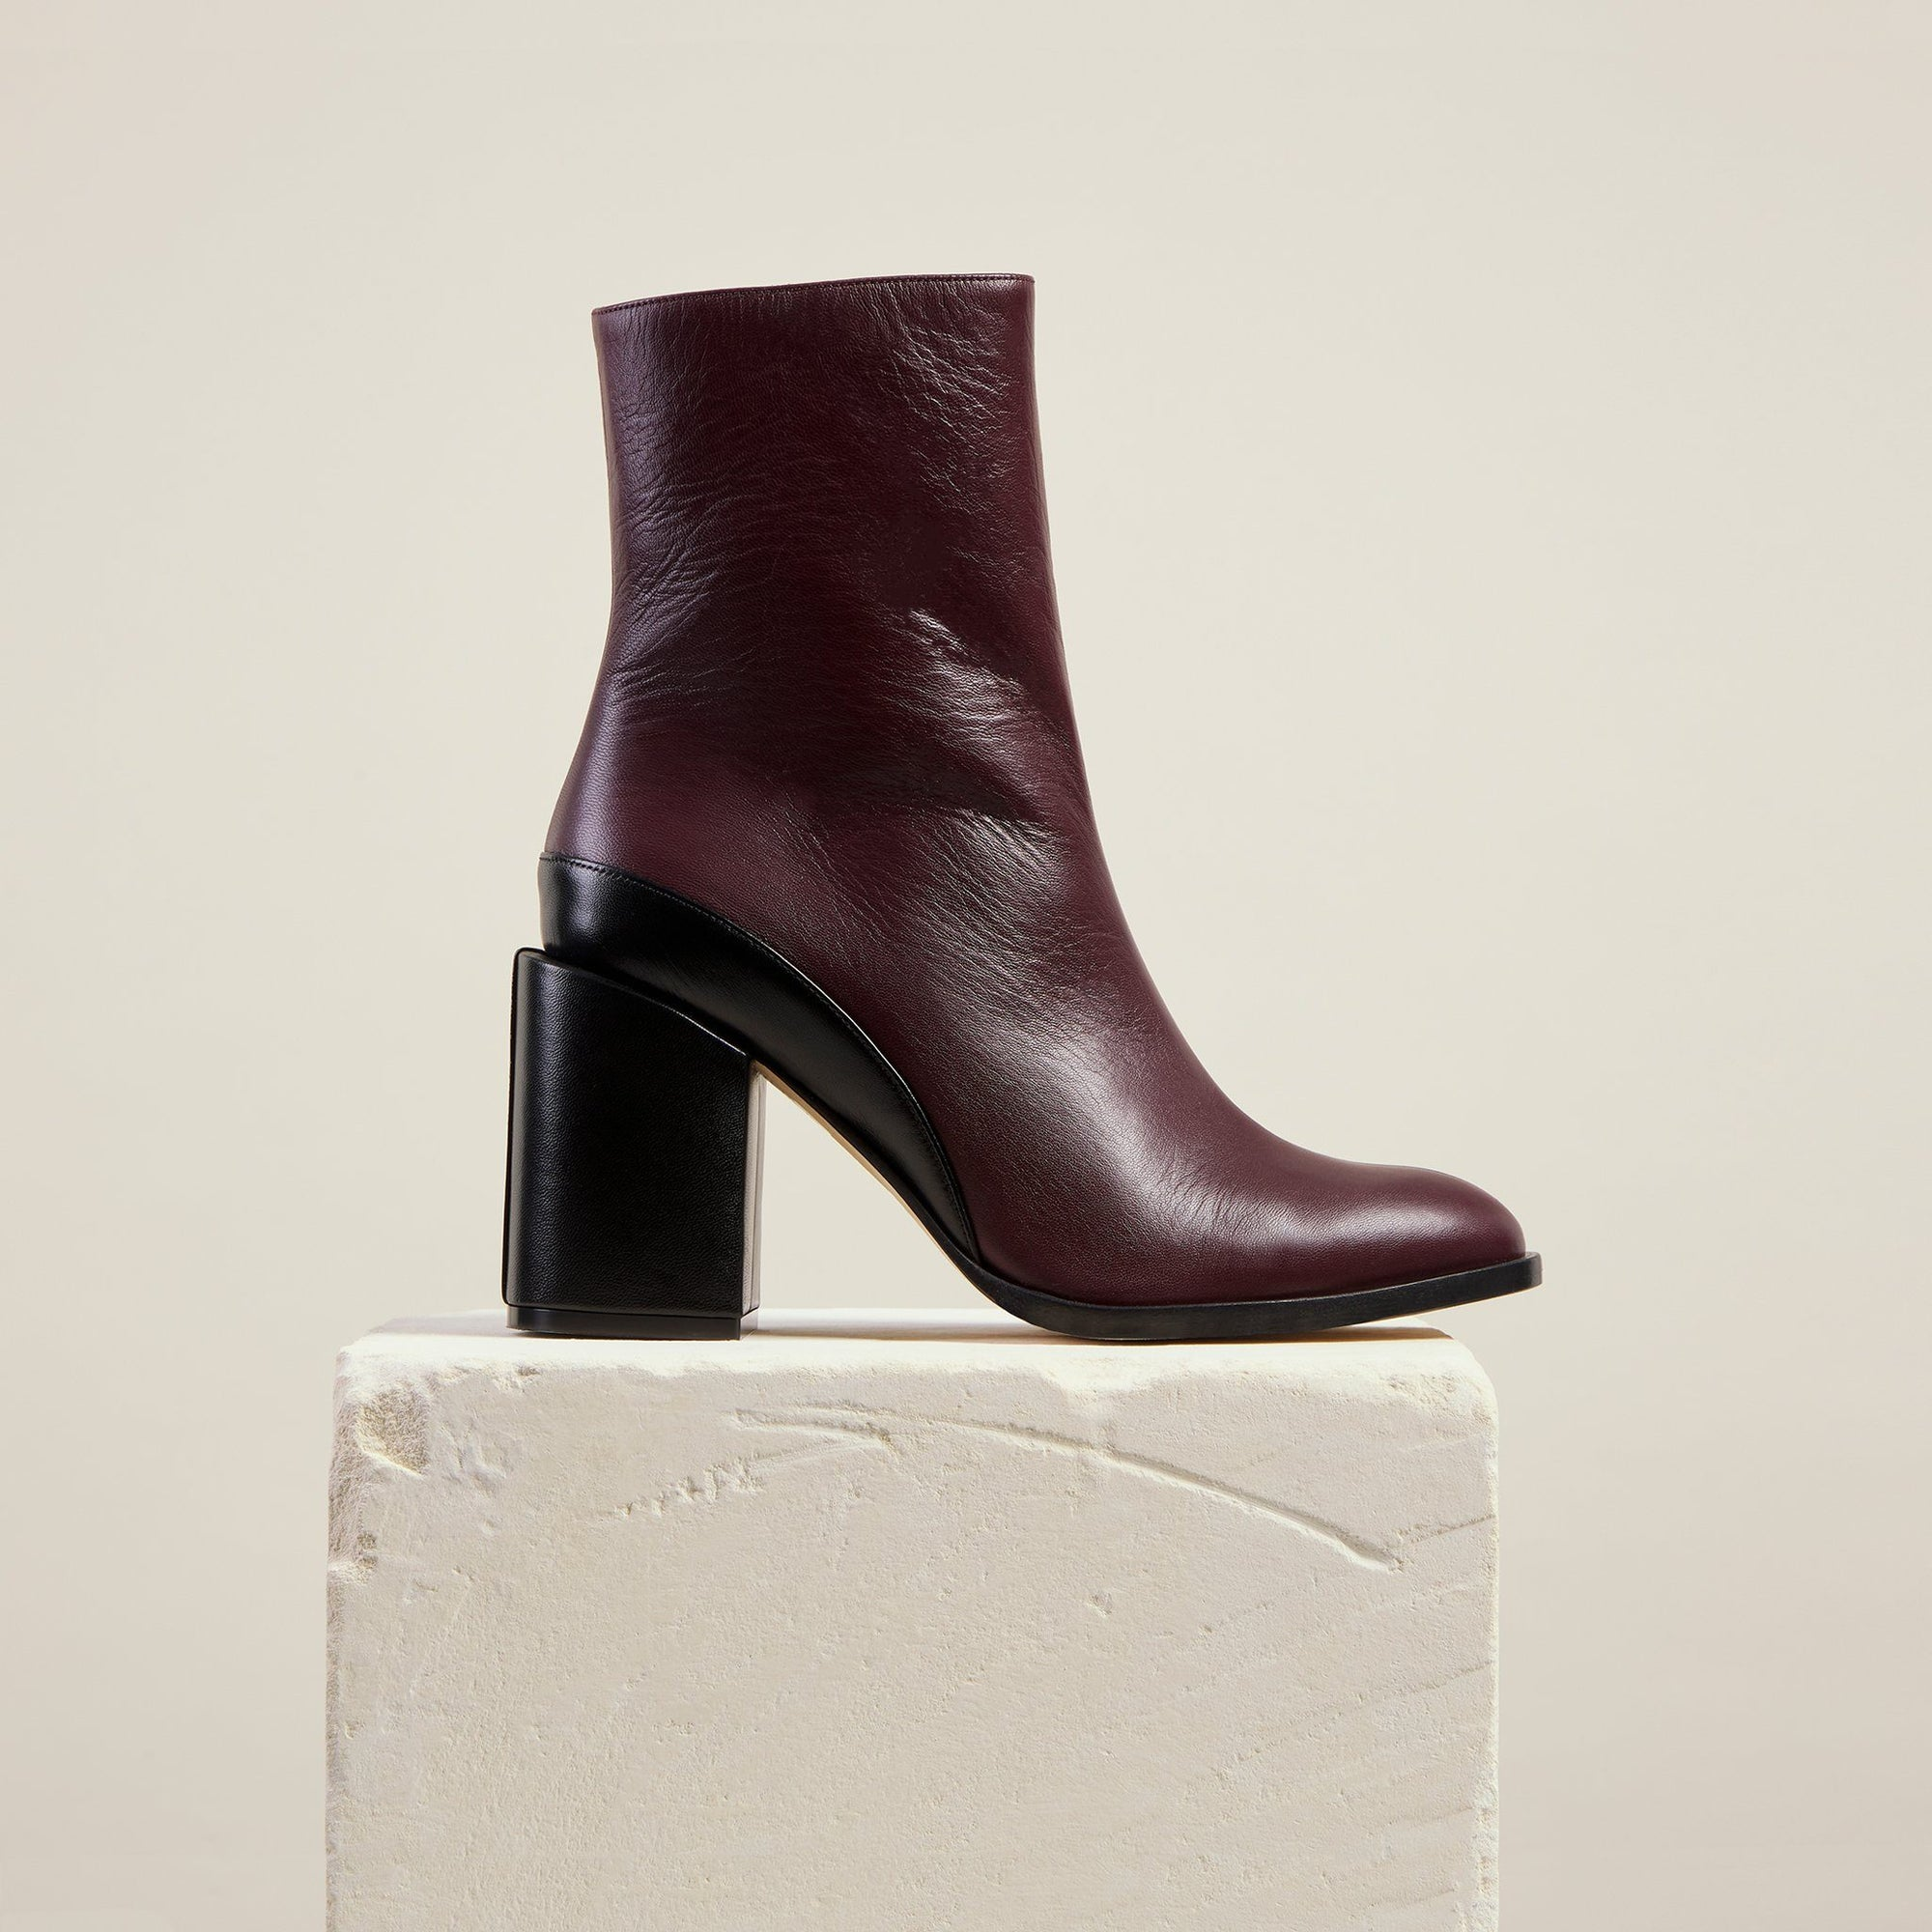 EVERLANE Women's Shoes Chelsea Boots Ankle LadiesLeather Size UK 8 EU 41 New